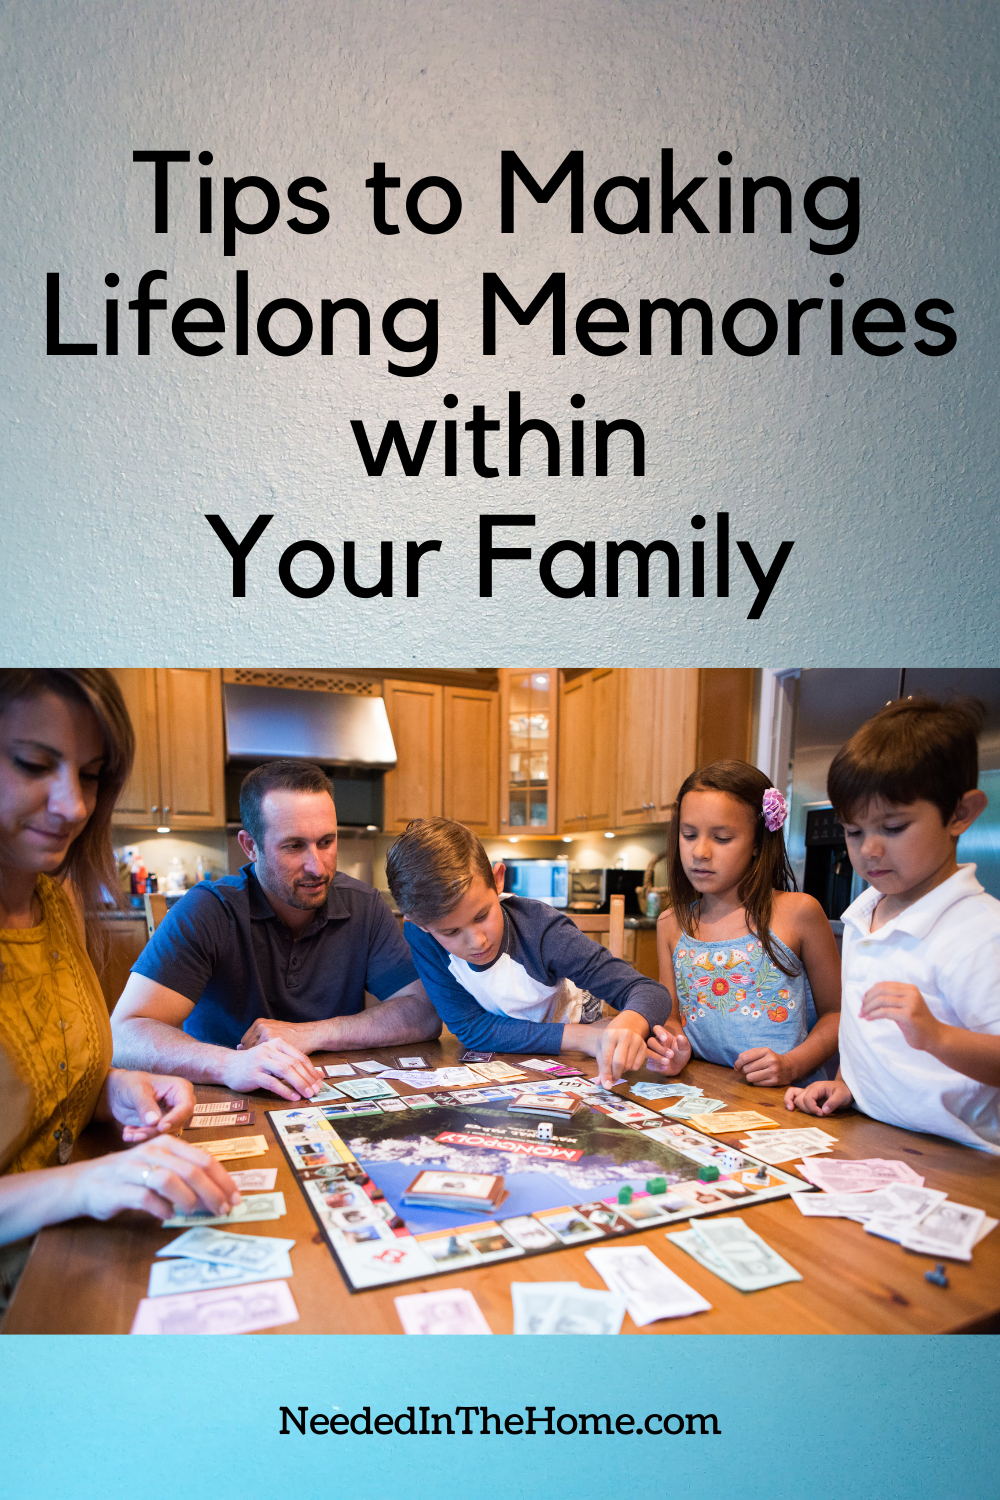 pinterest-pin-description tips to making lifelong memories within your family game night board game neededinthehome